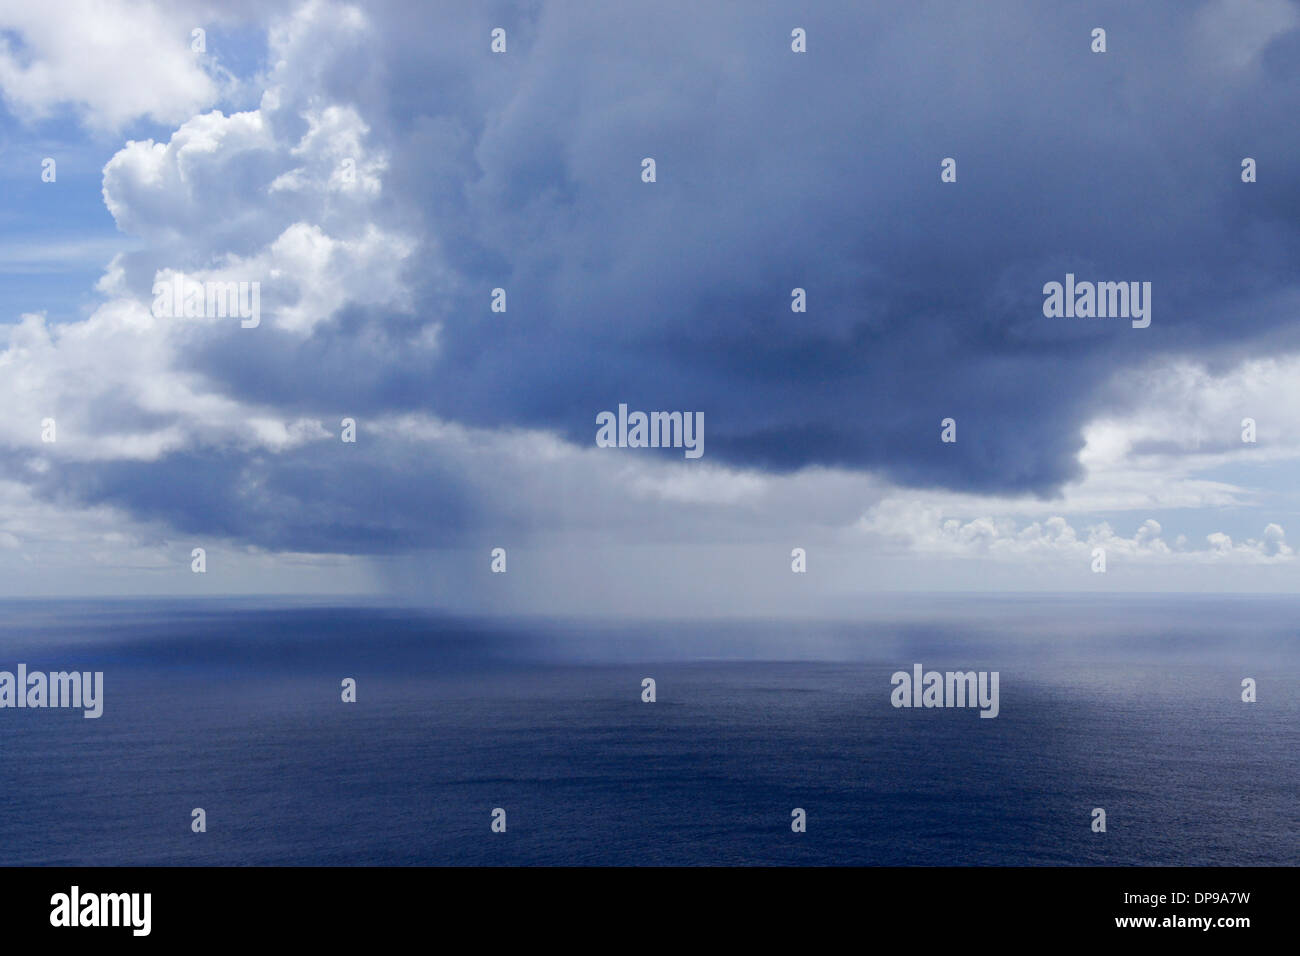 Rain squall over the Pacific Ocean off of Easter Island, Chile - Stock Image